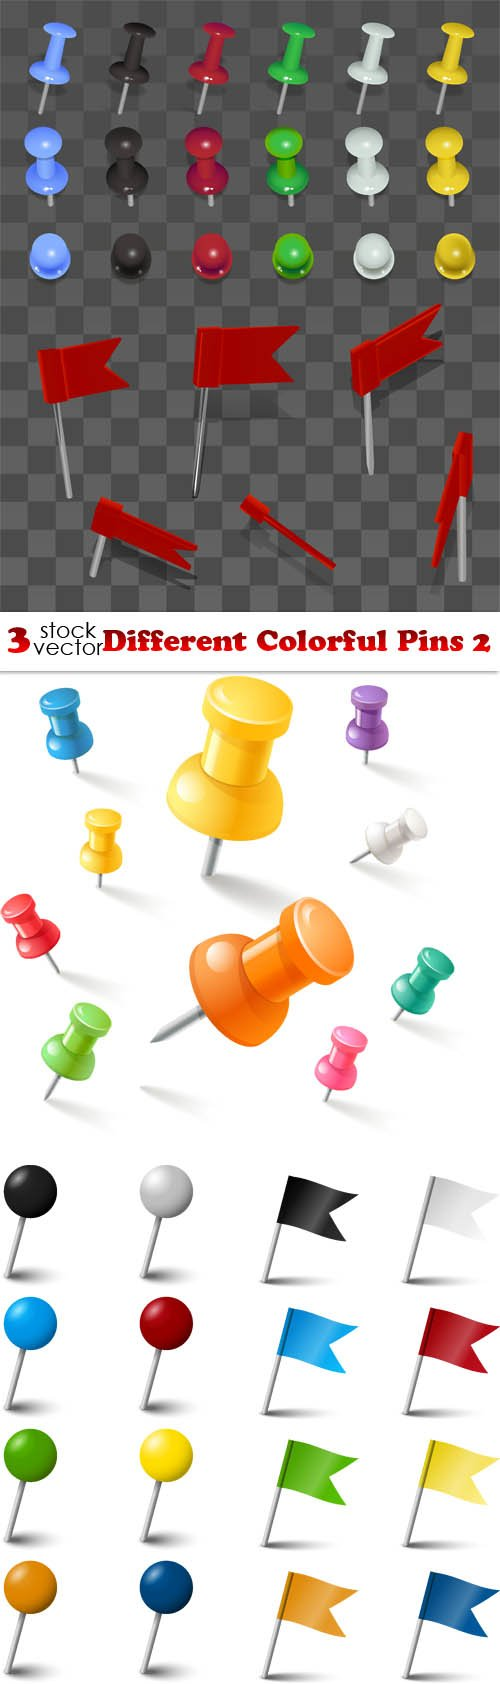 Vectors - Different Colorful Pins 2